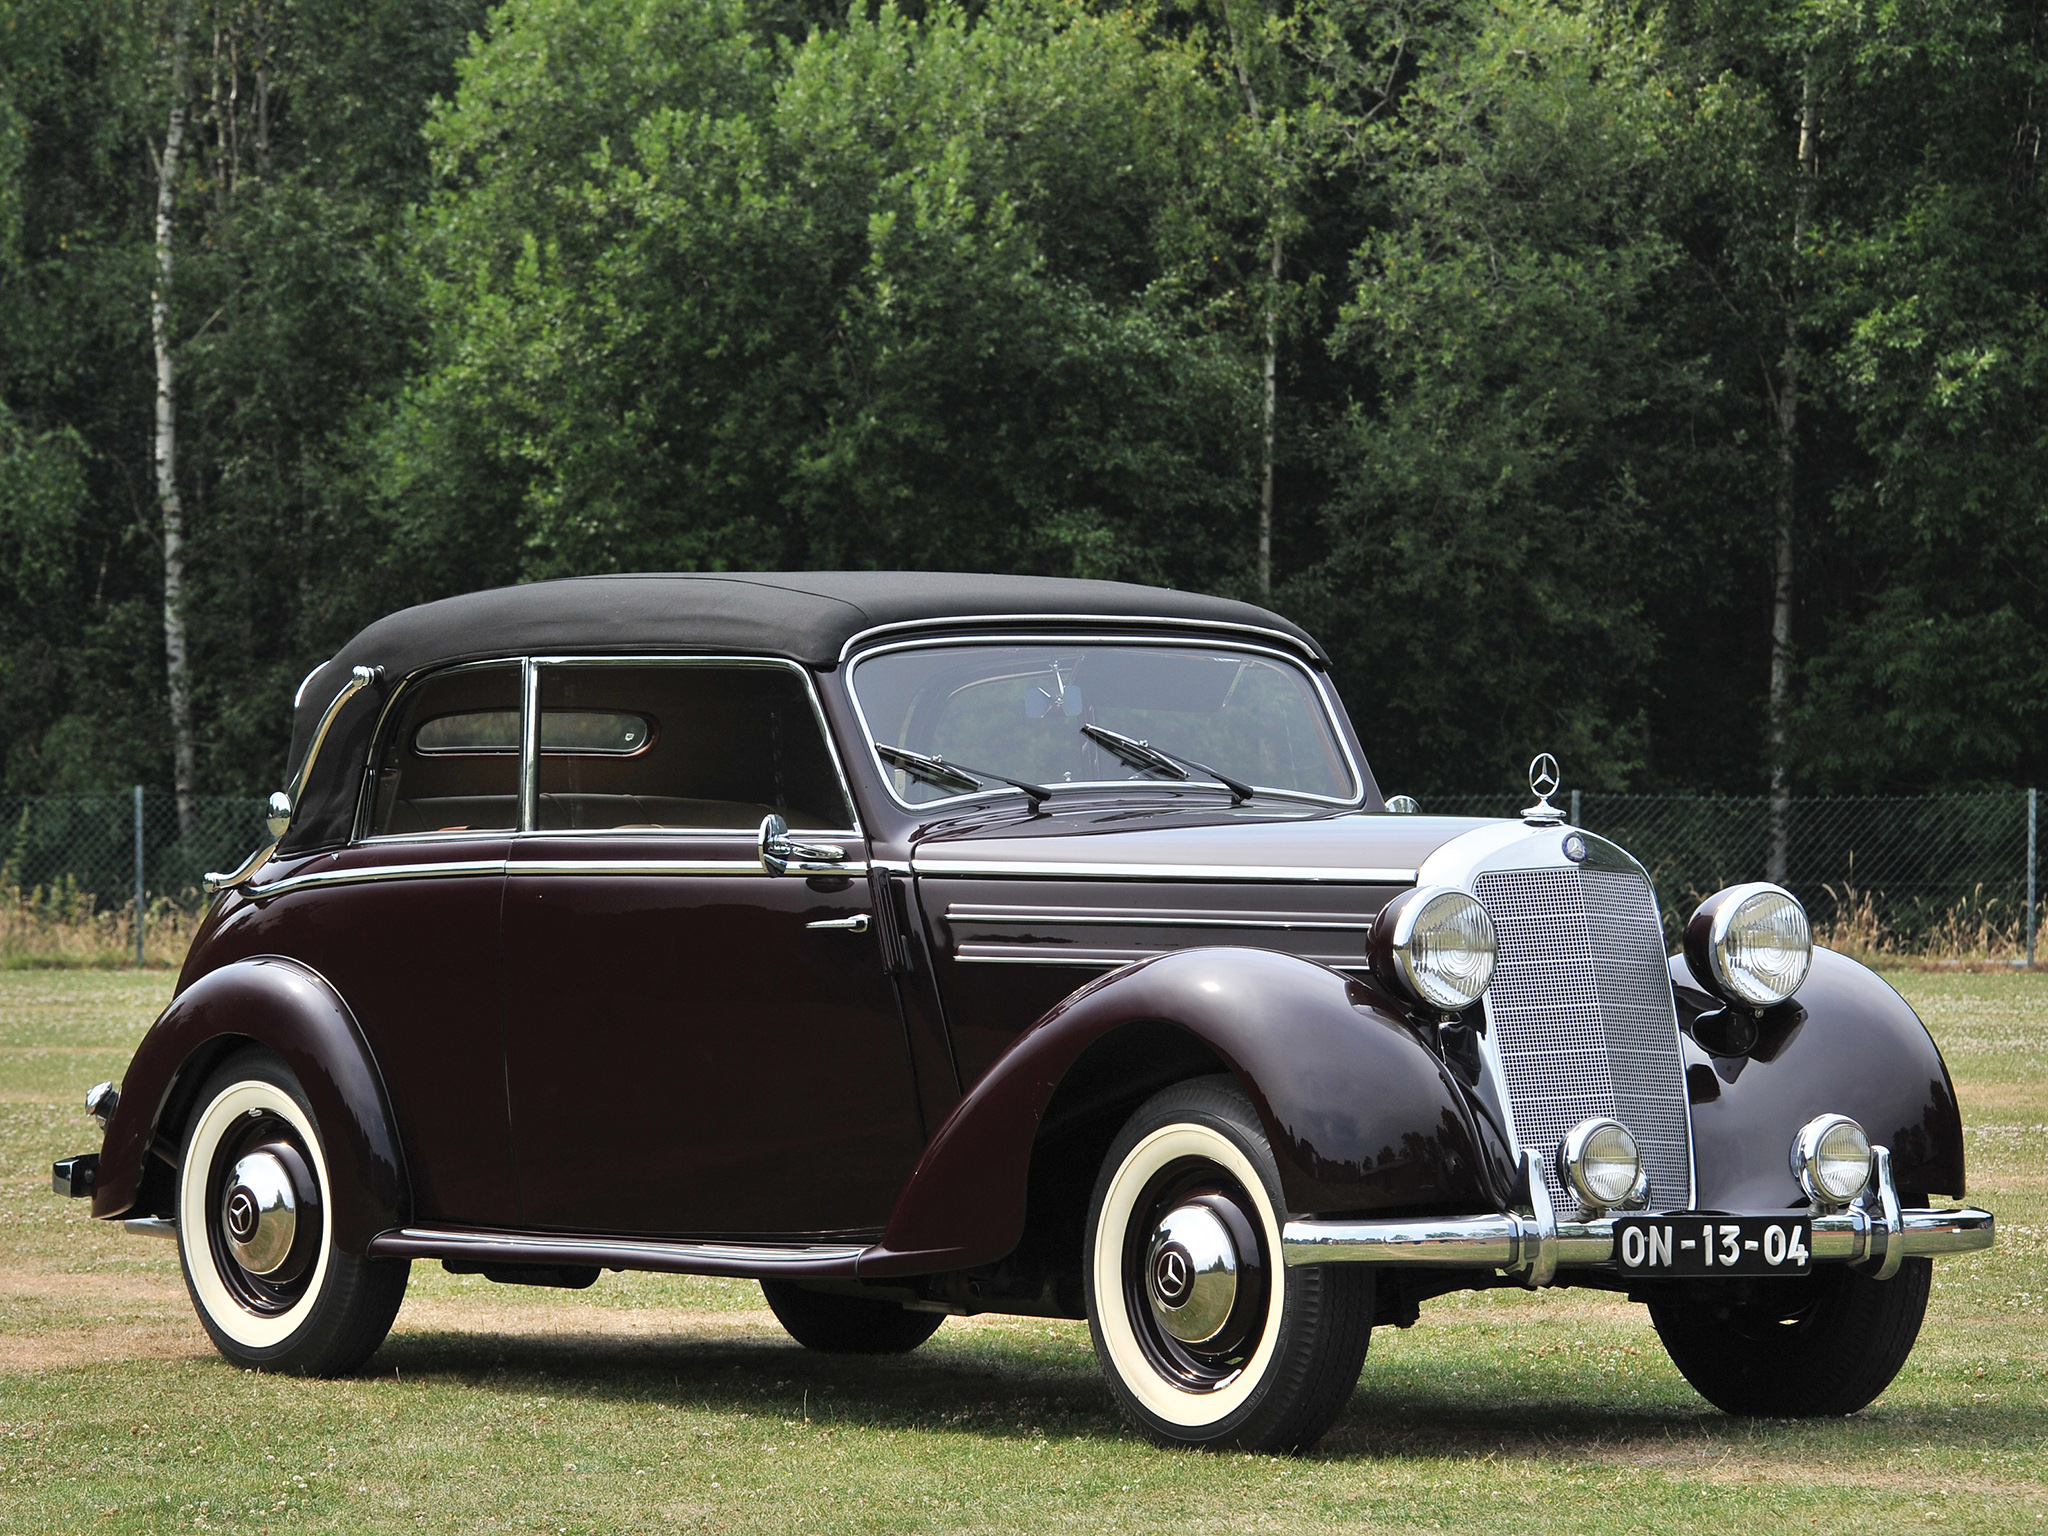 1950 mercedes benz 170 information and photos momentcar for Facts about mercedes benz